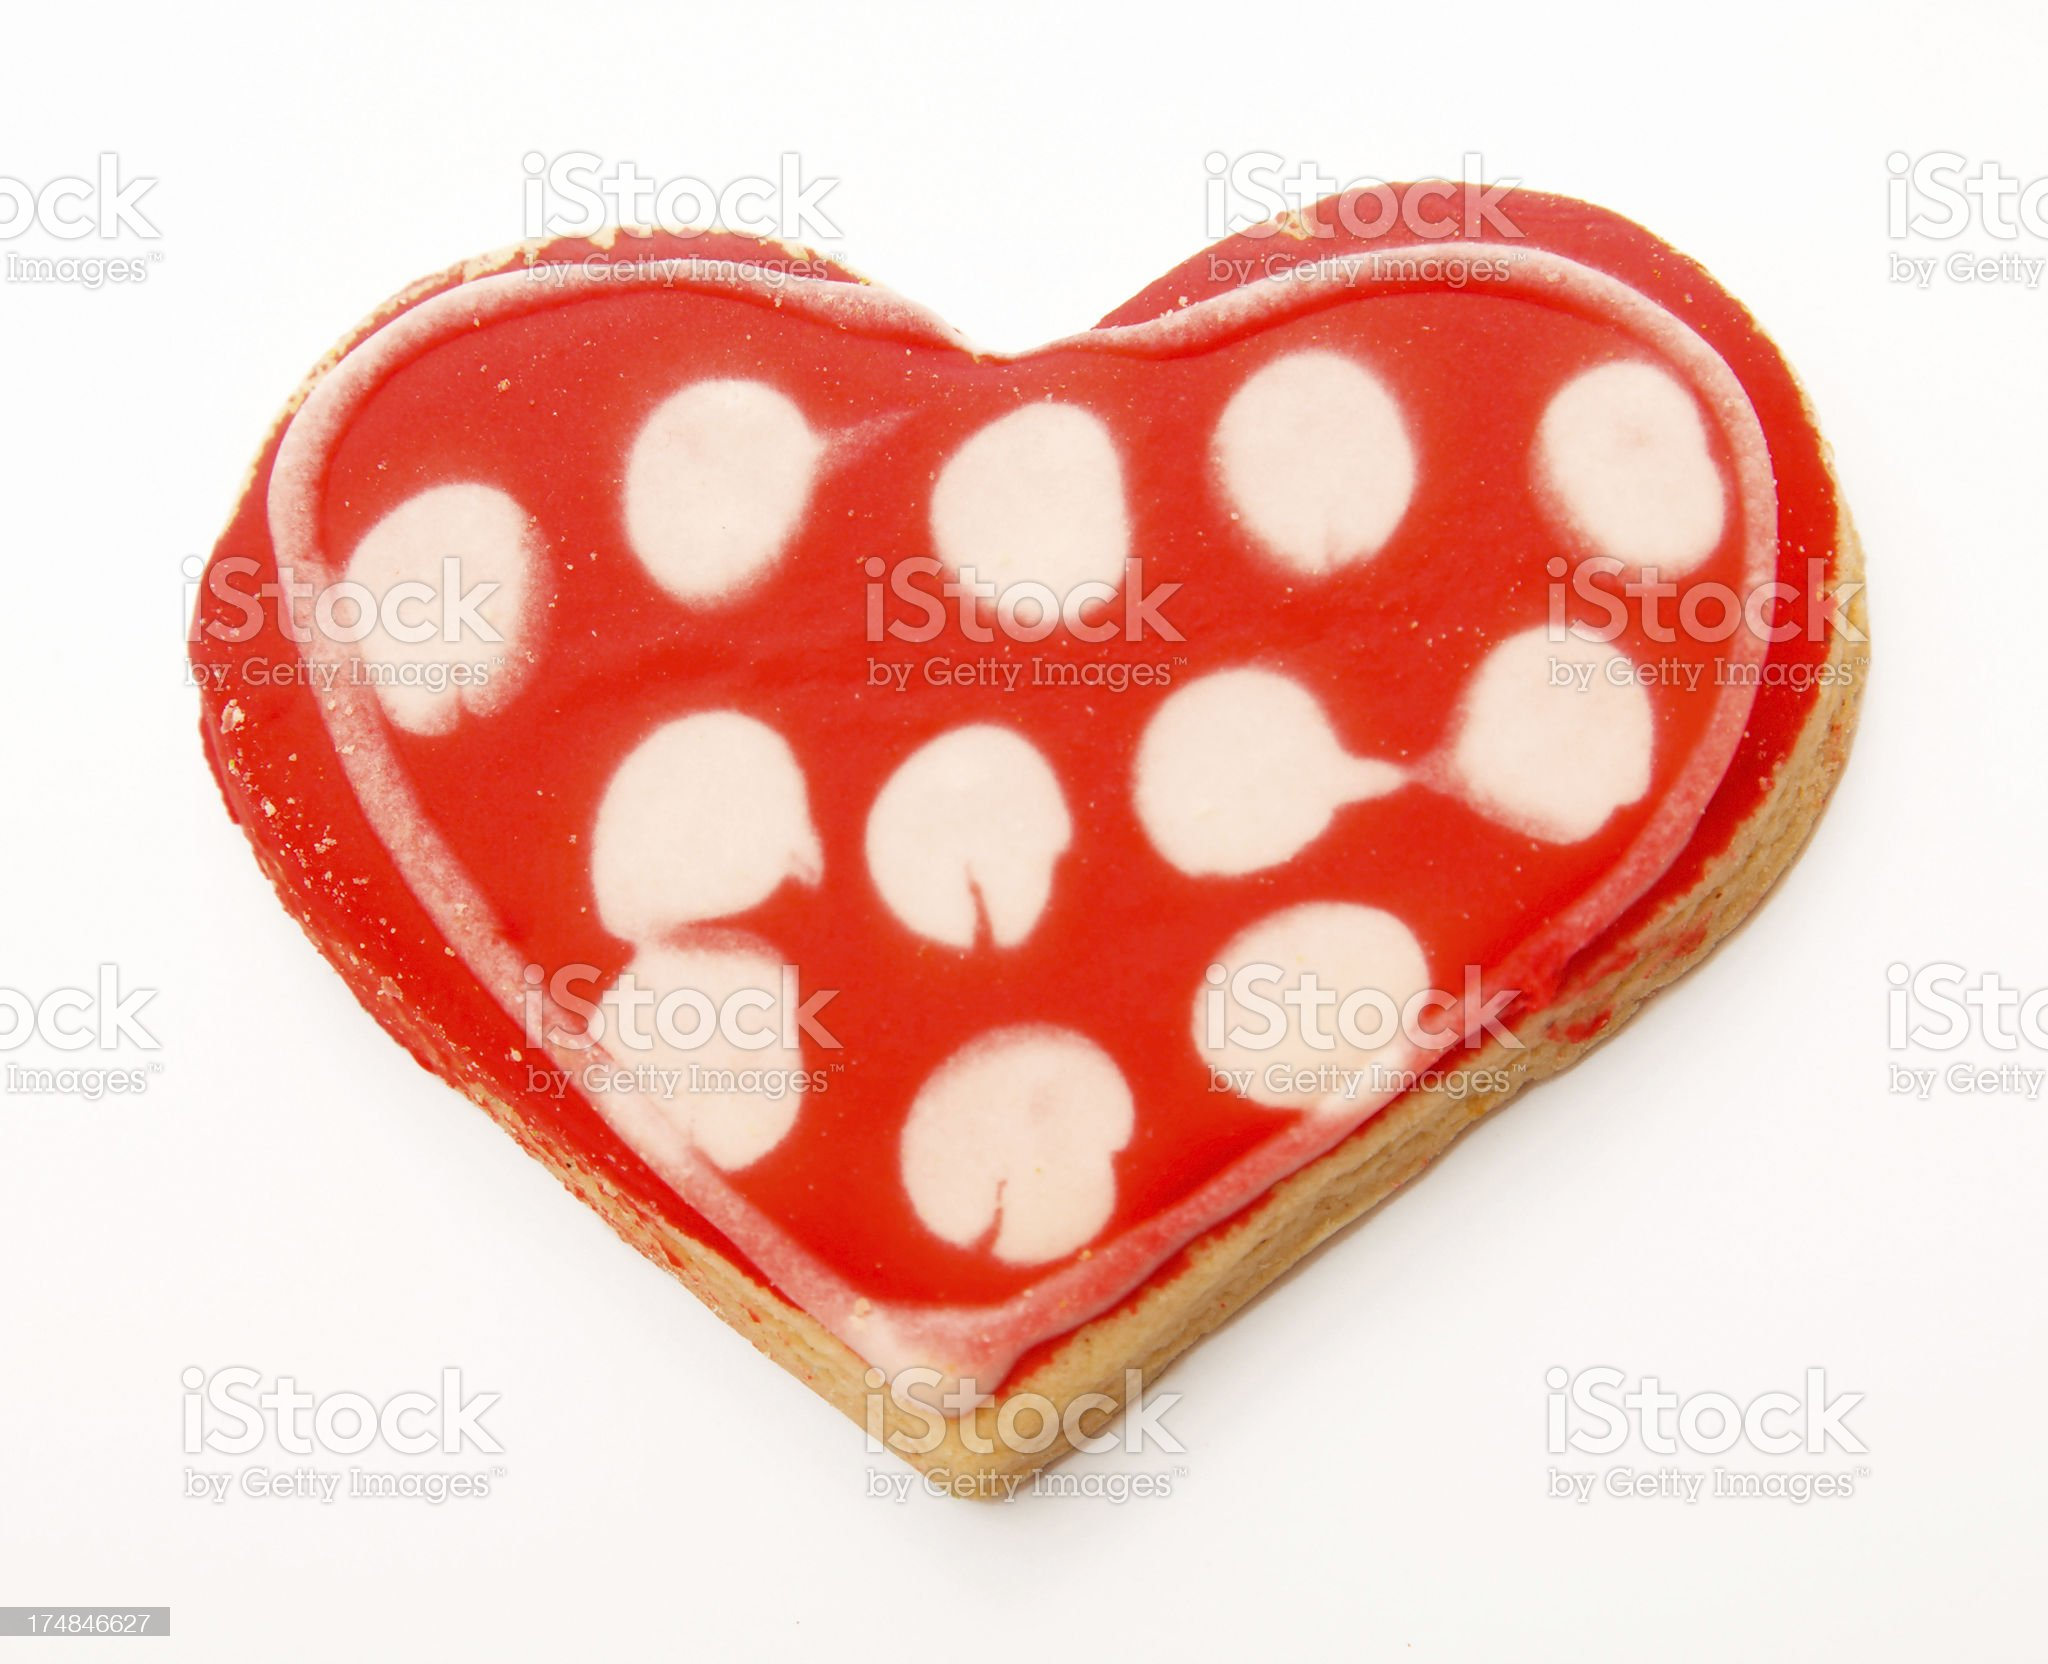 Cookie heart royalty-free stock photo